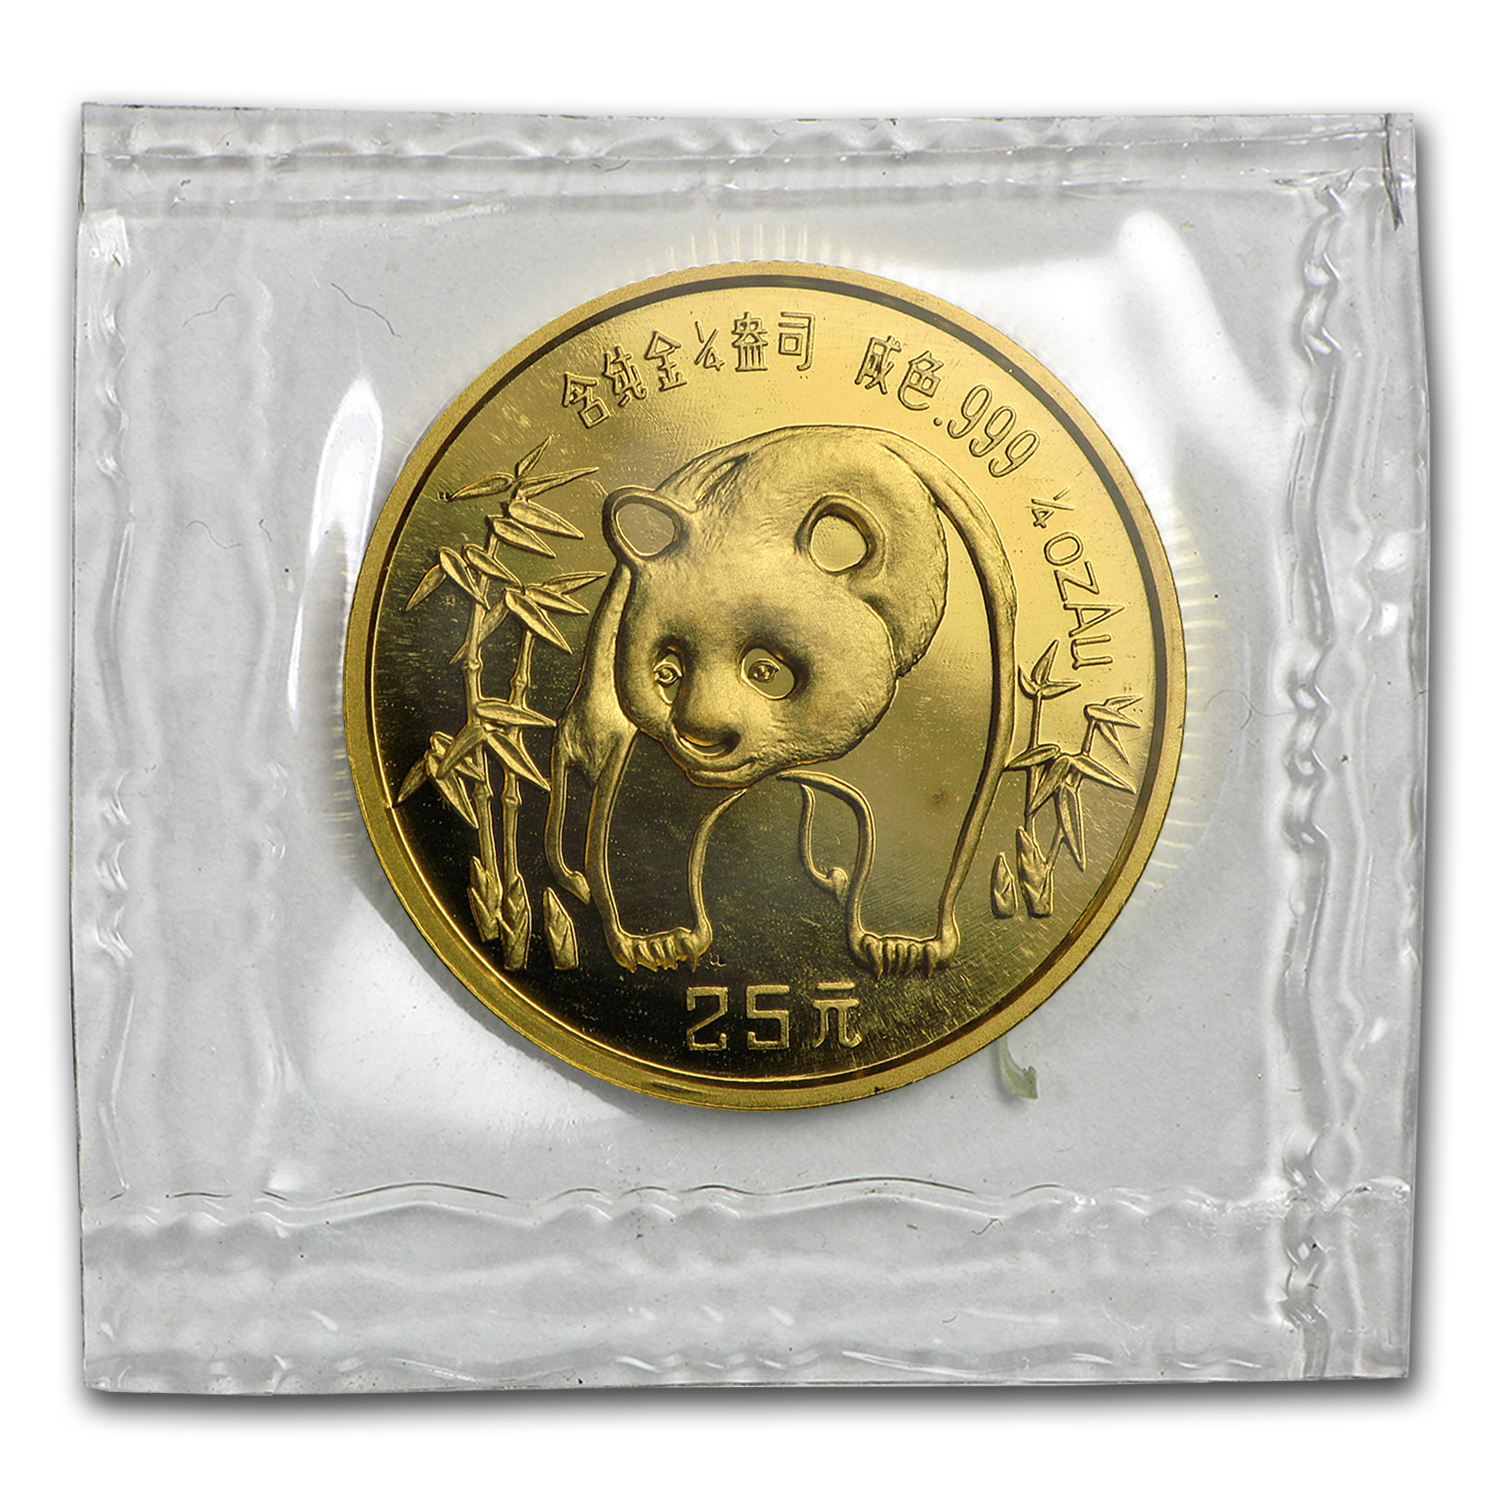 1986 China 1/4 oz Gold Panda BU (Sealed)